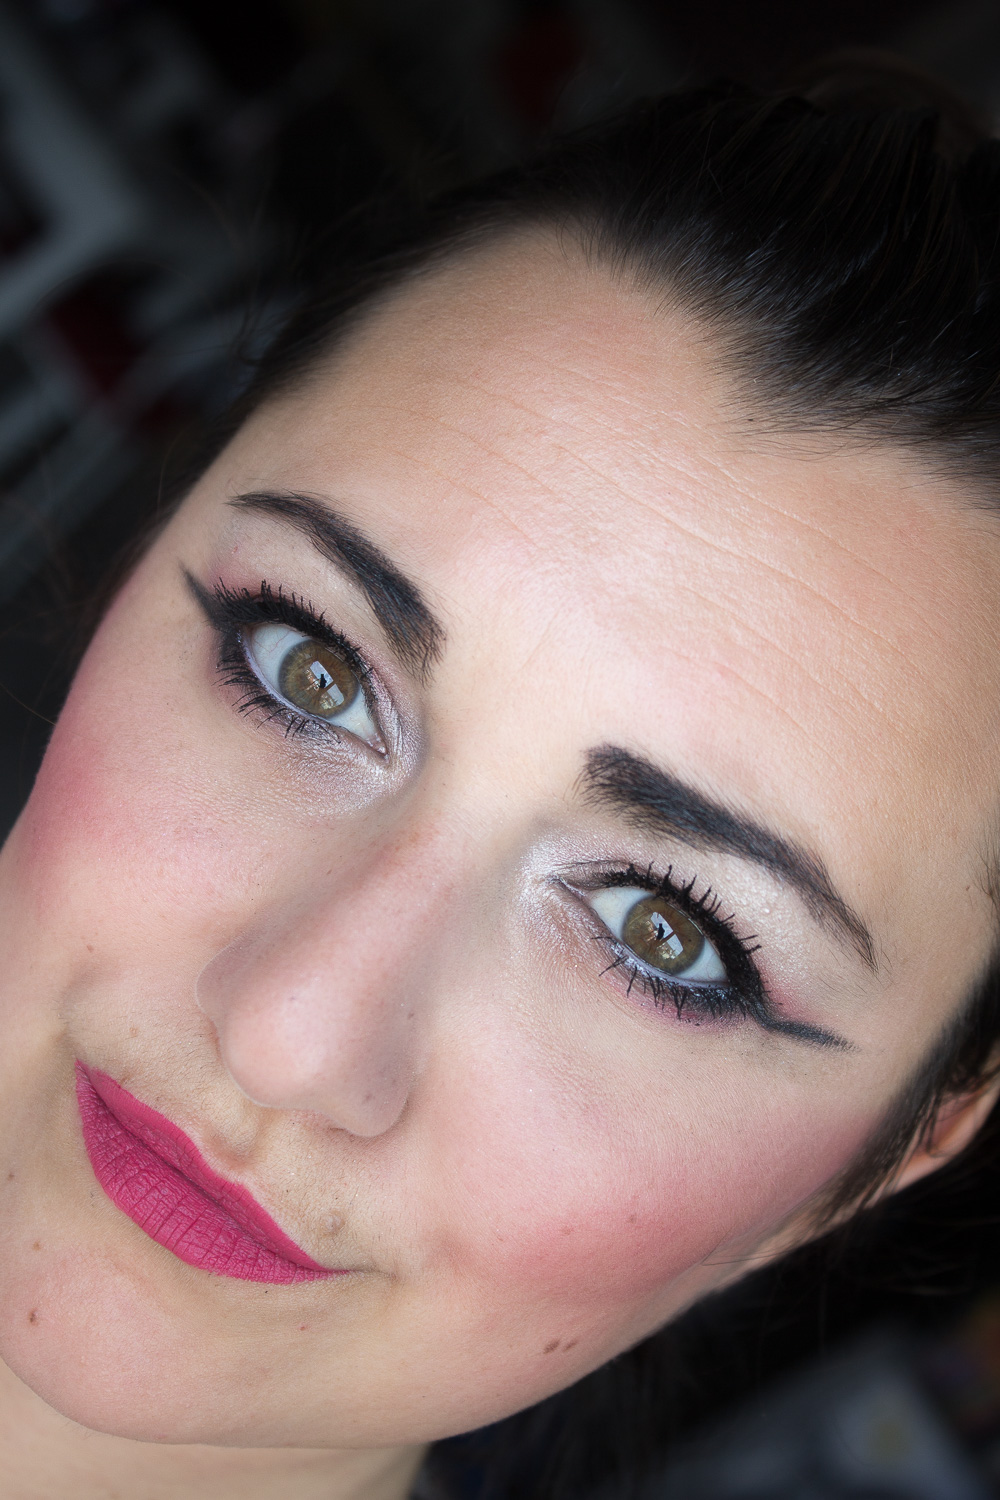 sailor moon,black lady,blogparade,make up,spezial make up,majkaswelt